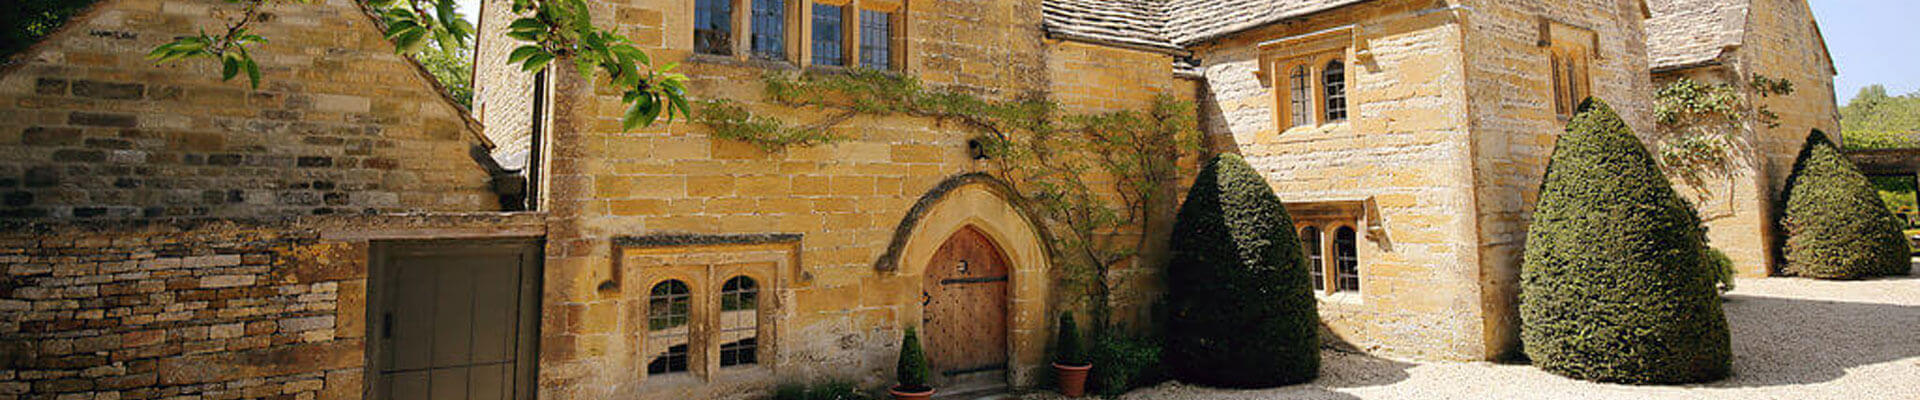 Photo of the stunning entrance to the Manor at Temple Guiting Estates